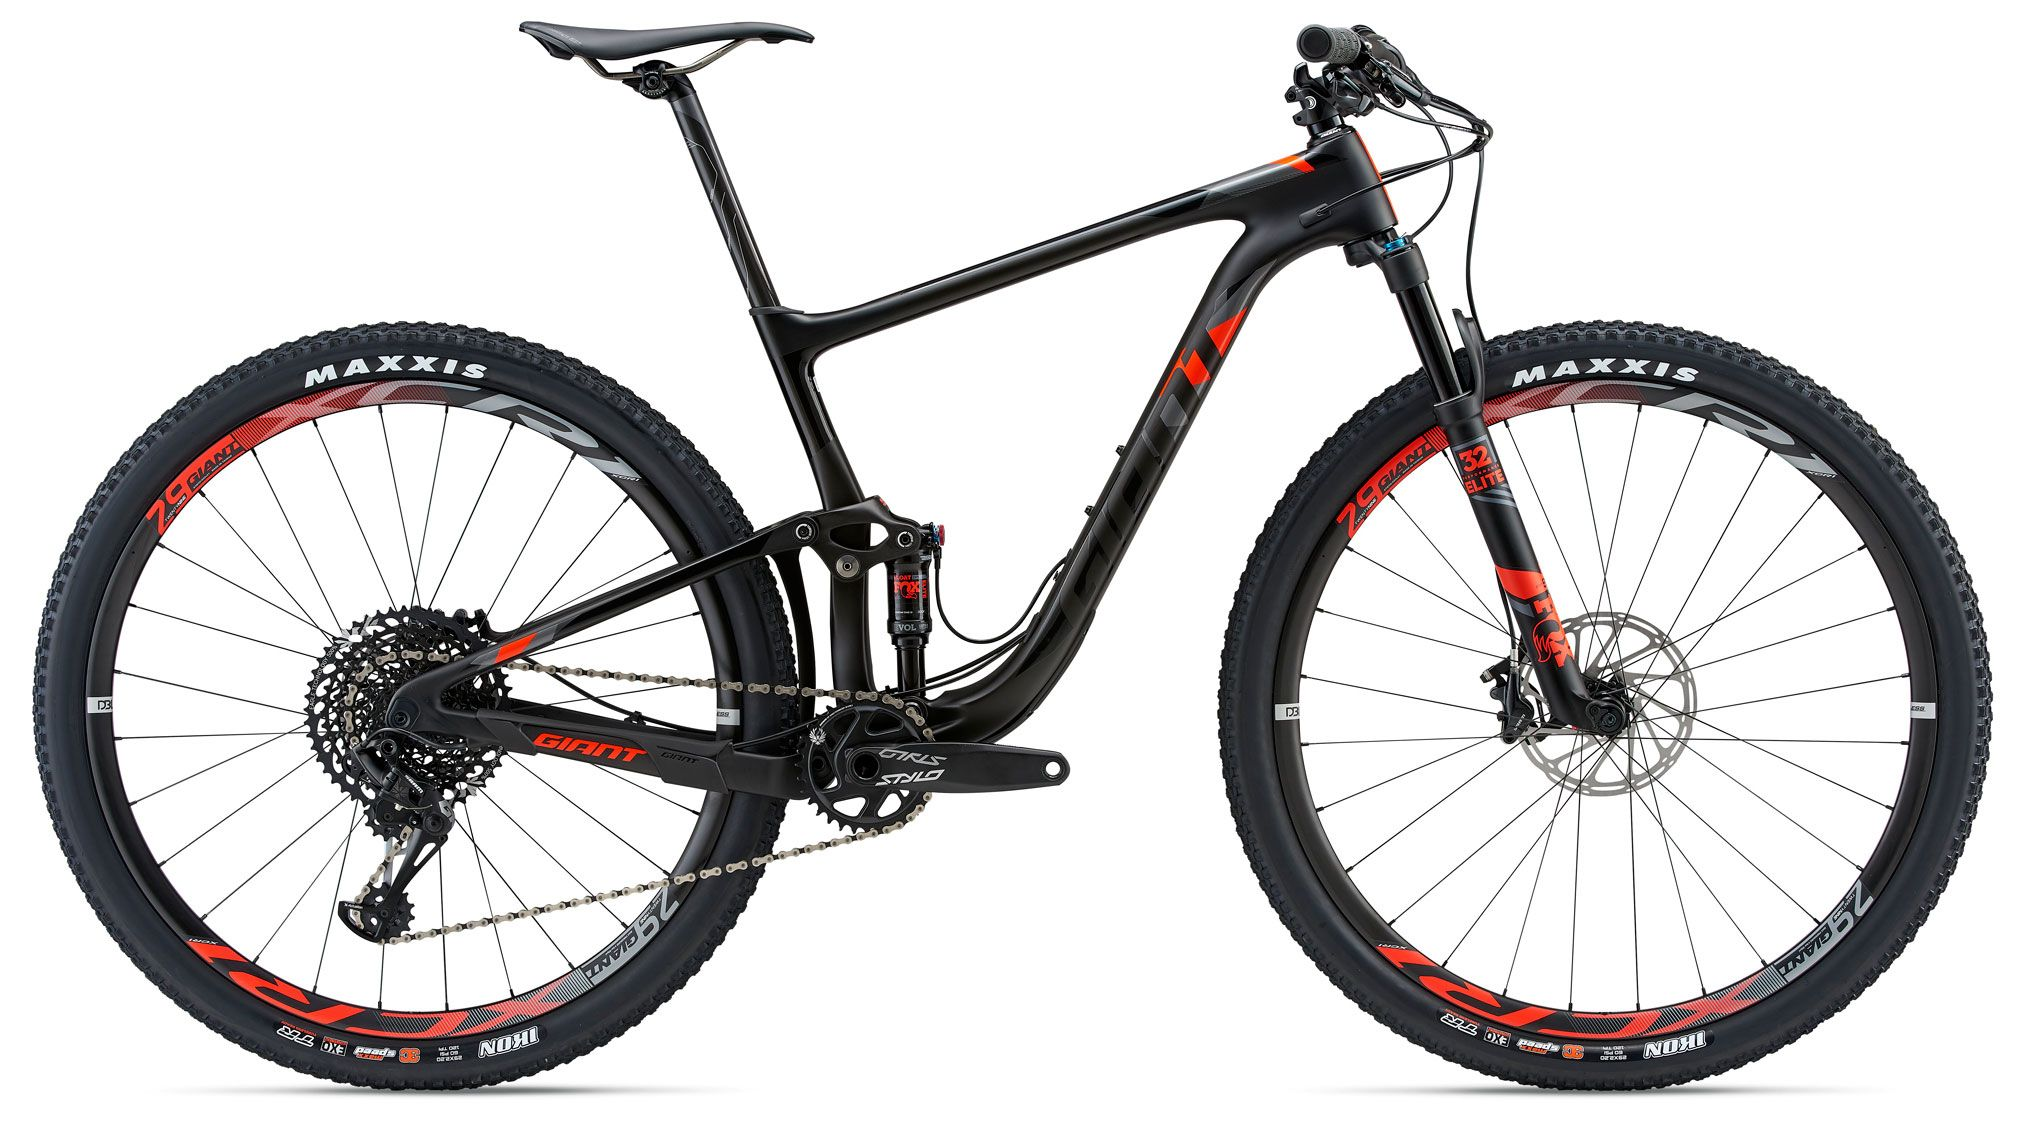 Велосипед Giant Anthem Advanced Pro 29er 1 2018 велосипед giant anthem advanced 27 5 2 2016